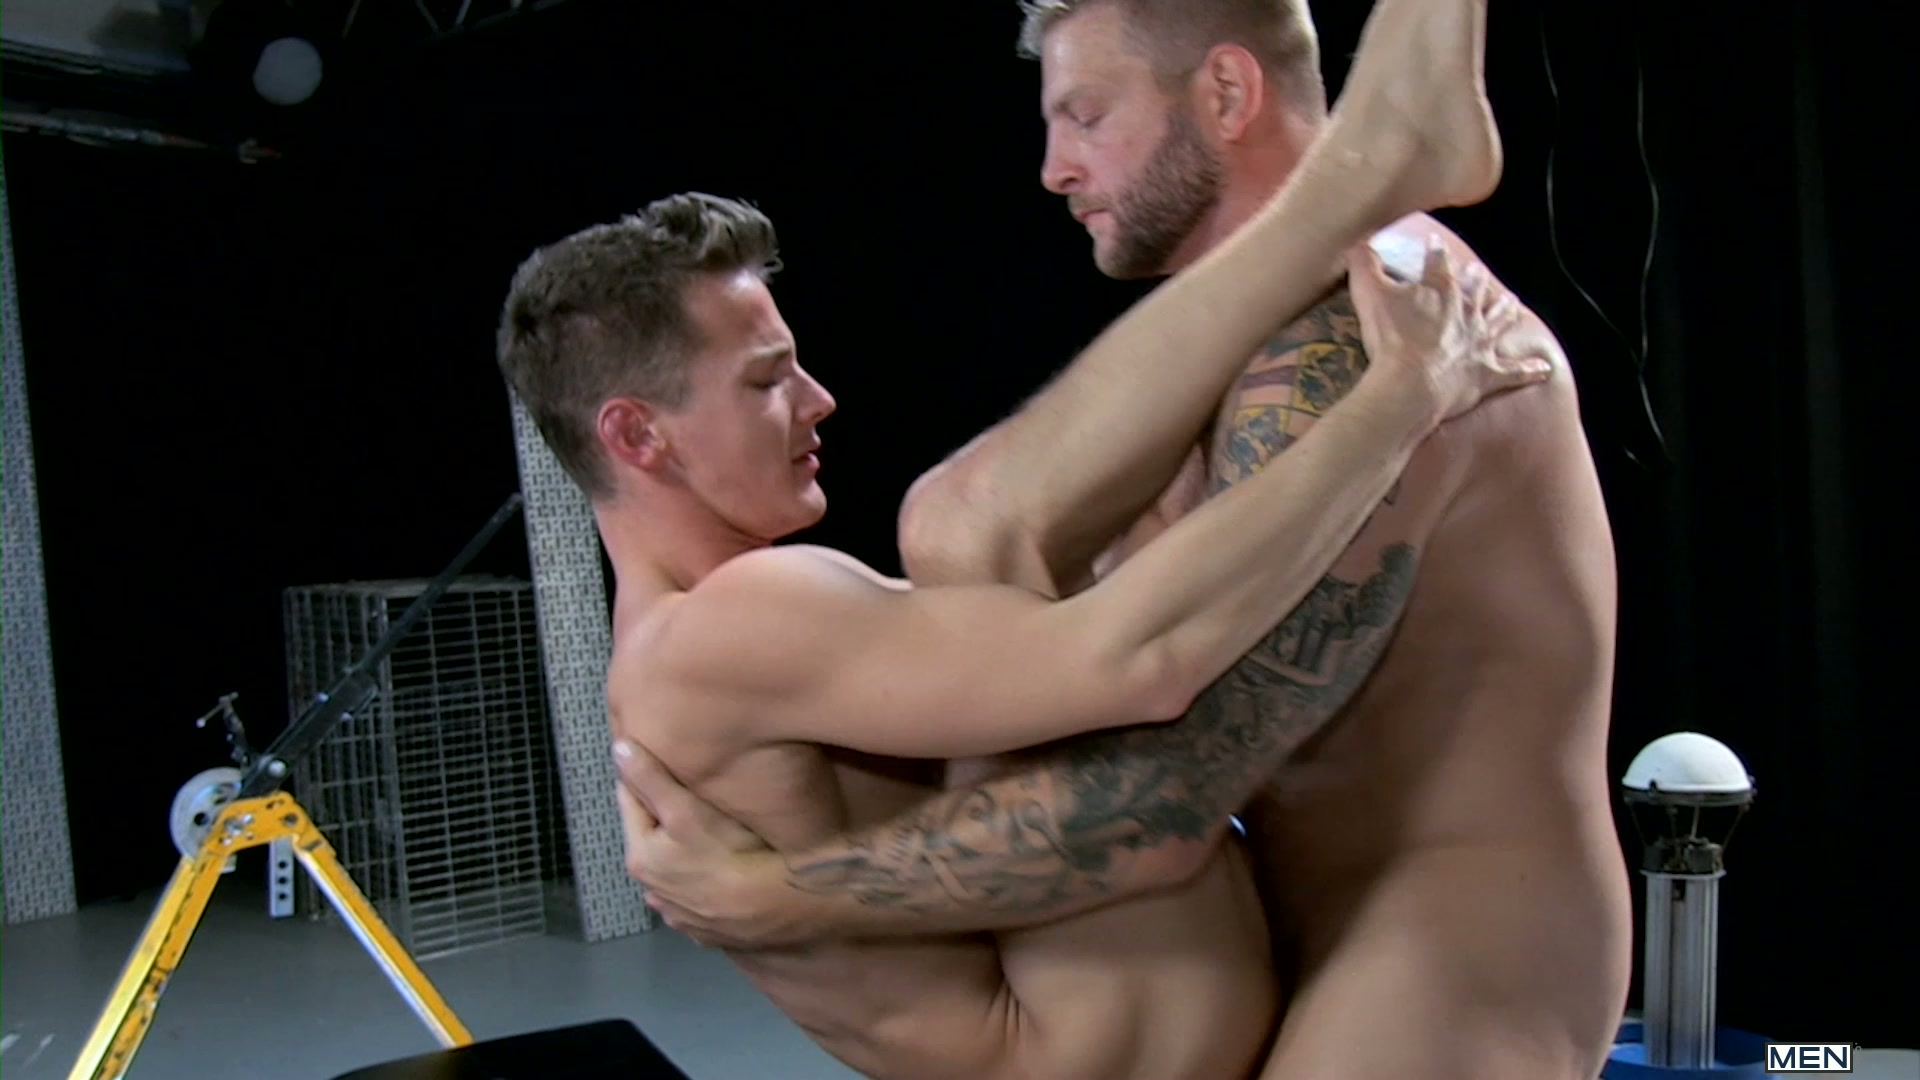 Watch The Gaytrix – Mouk – Men Of Uk – Colby Jansen And Darius Ferdynand (MEN.COM) Gay Porn Tube Videos Gifs And Free XXX HD Sex Movies Photos Online